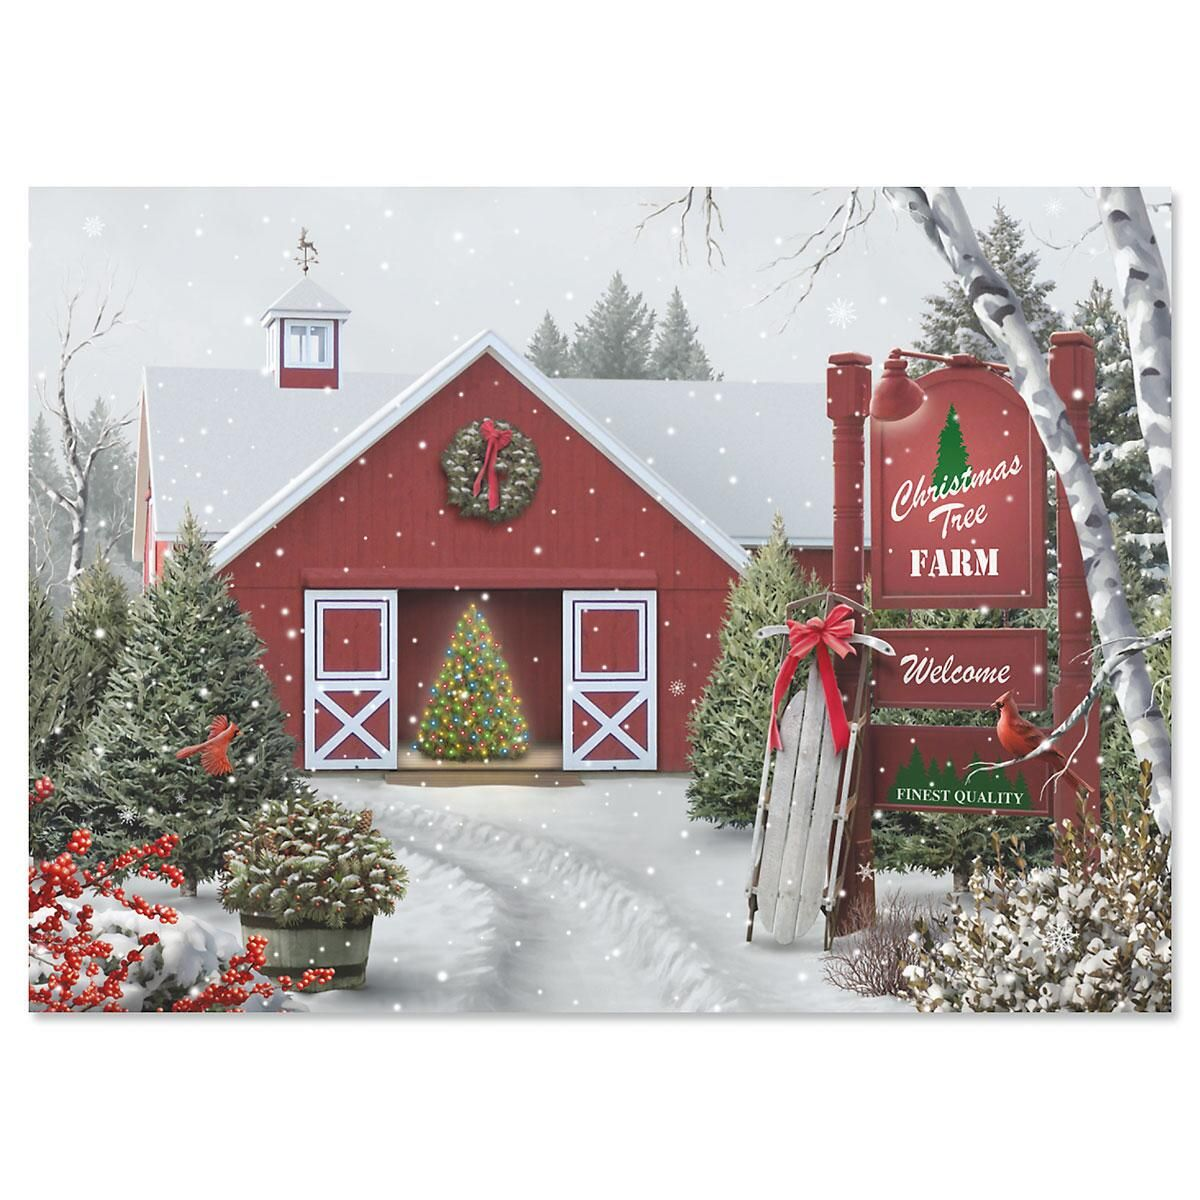 Tree Farm Religious Christmas Cards